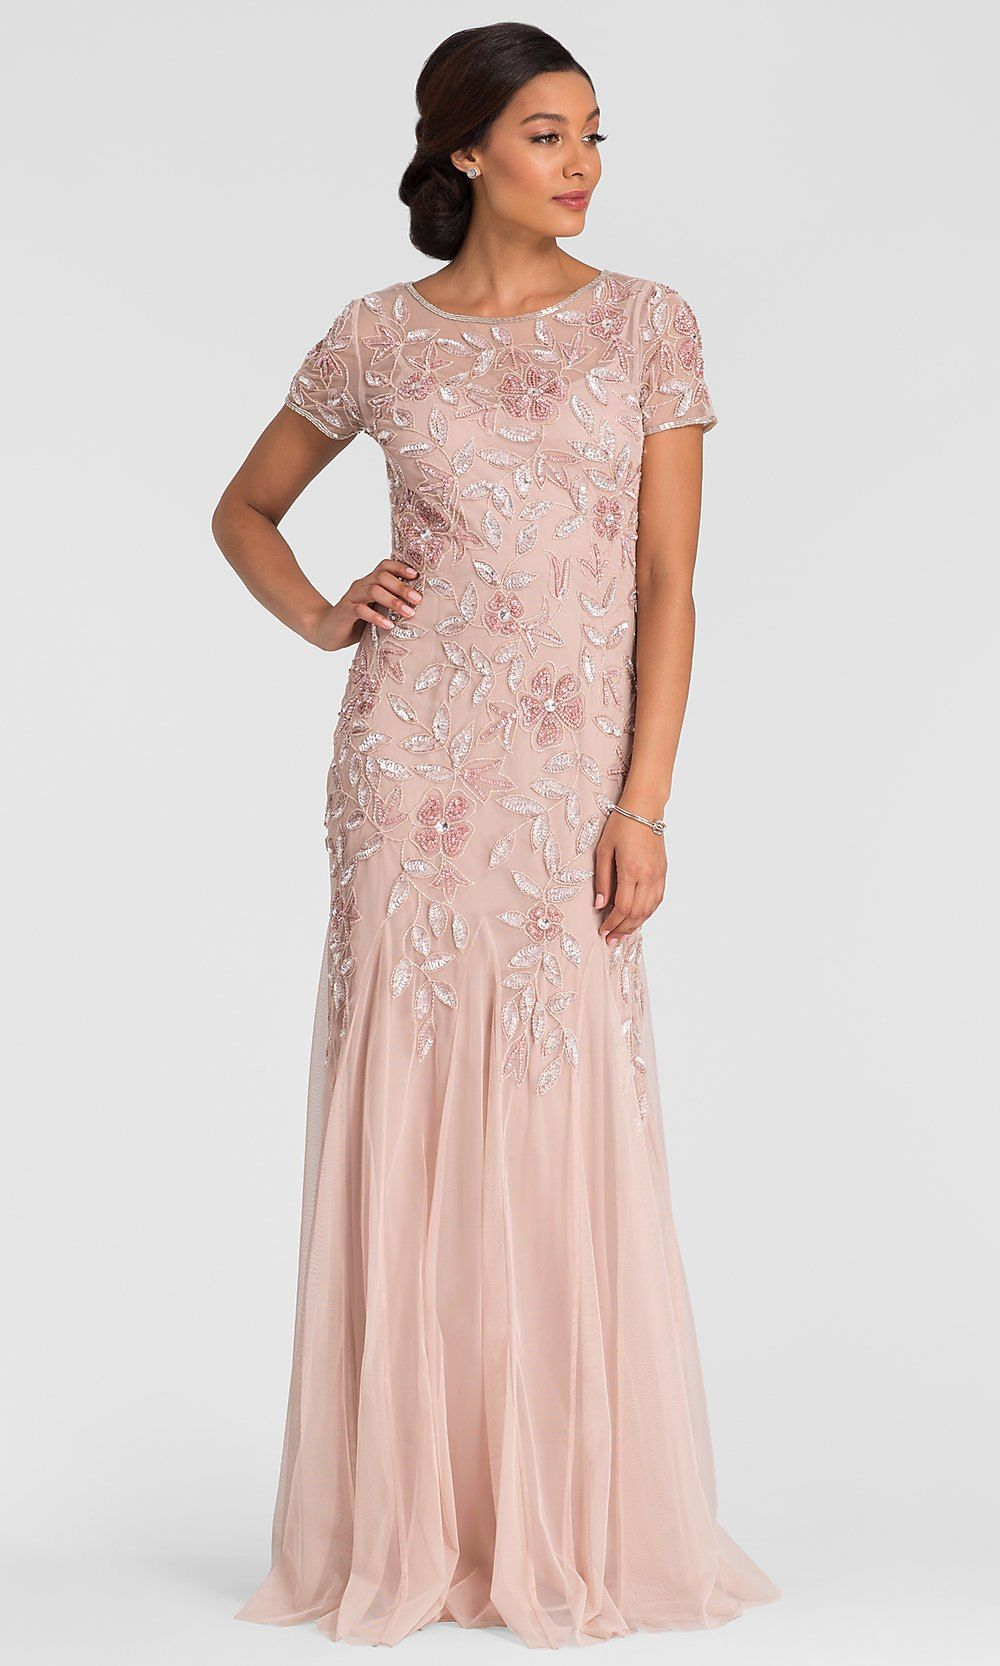 Adrianna Papell Long Blush Pink Sequin Mob Dress Mother Of The Bride Dresses Long Mob Dresses Mom Wedding Dress